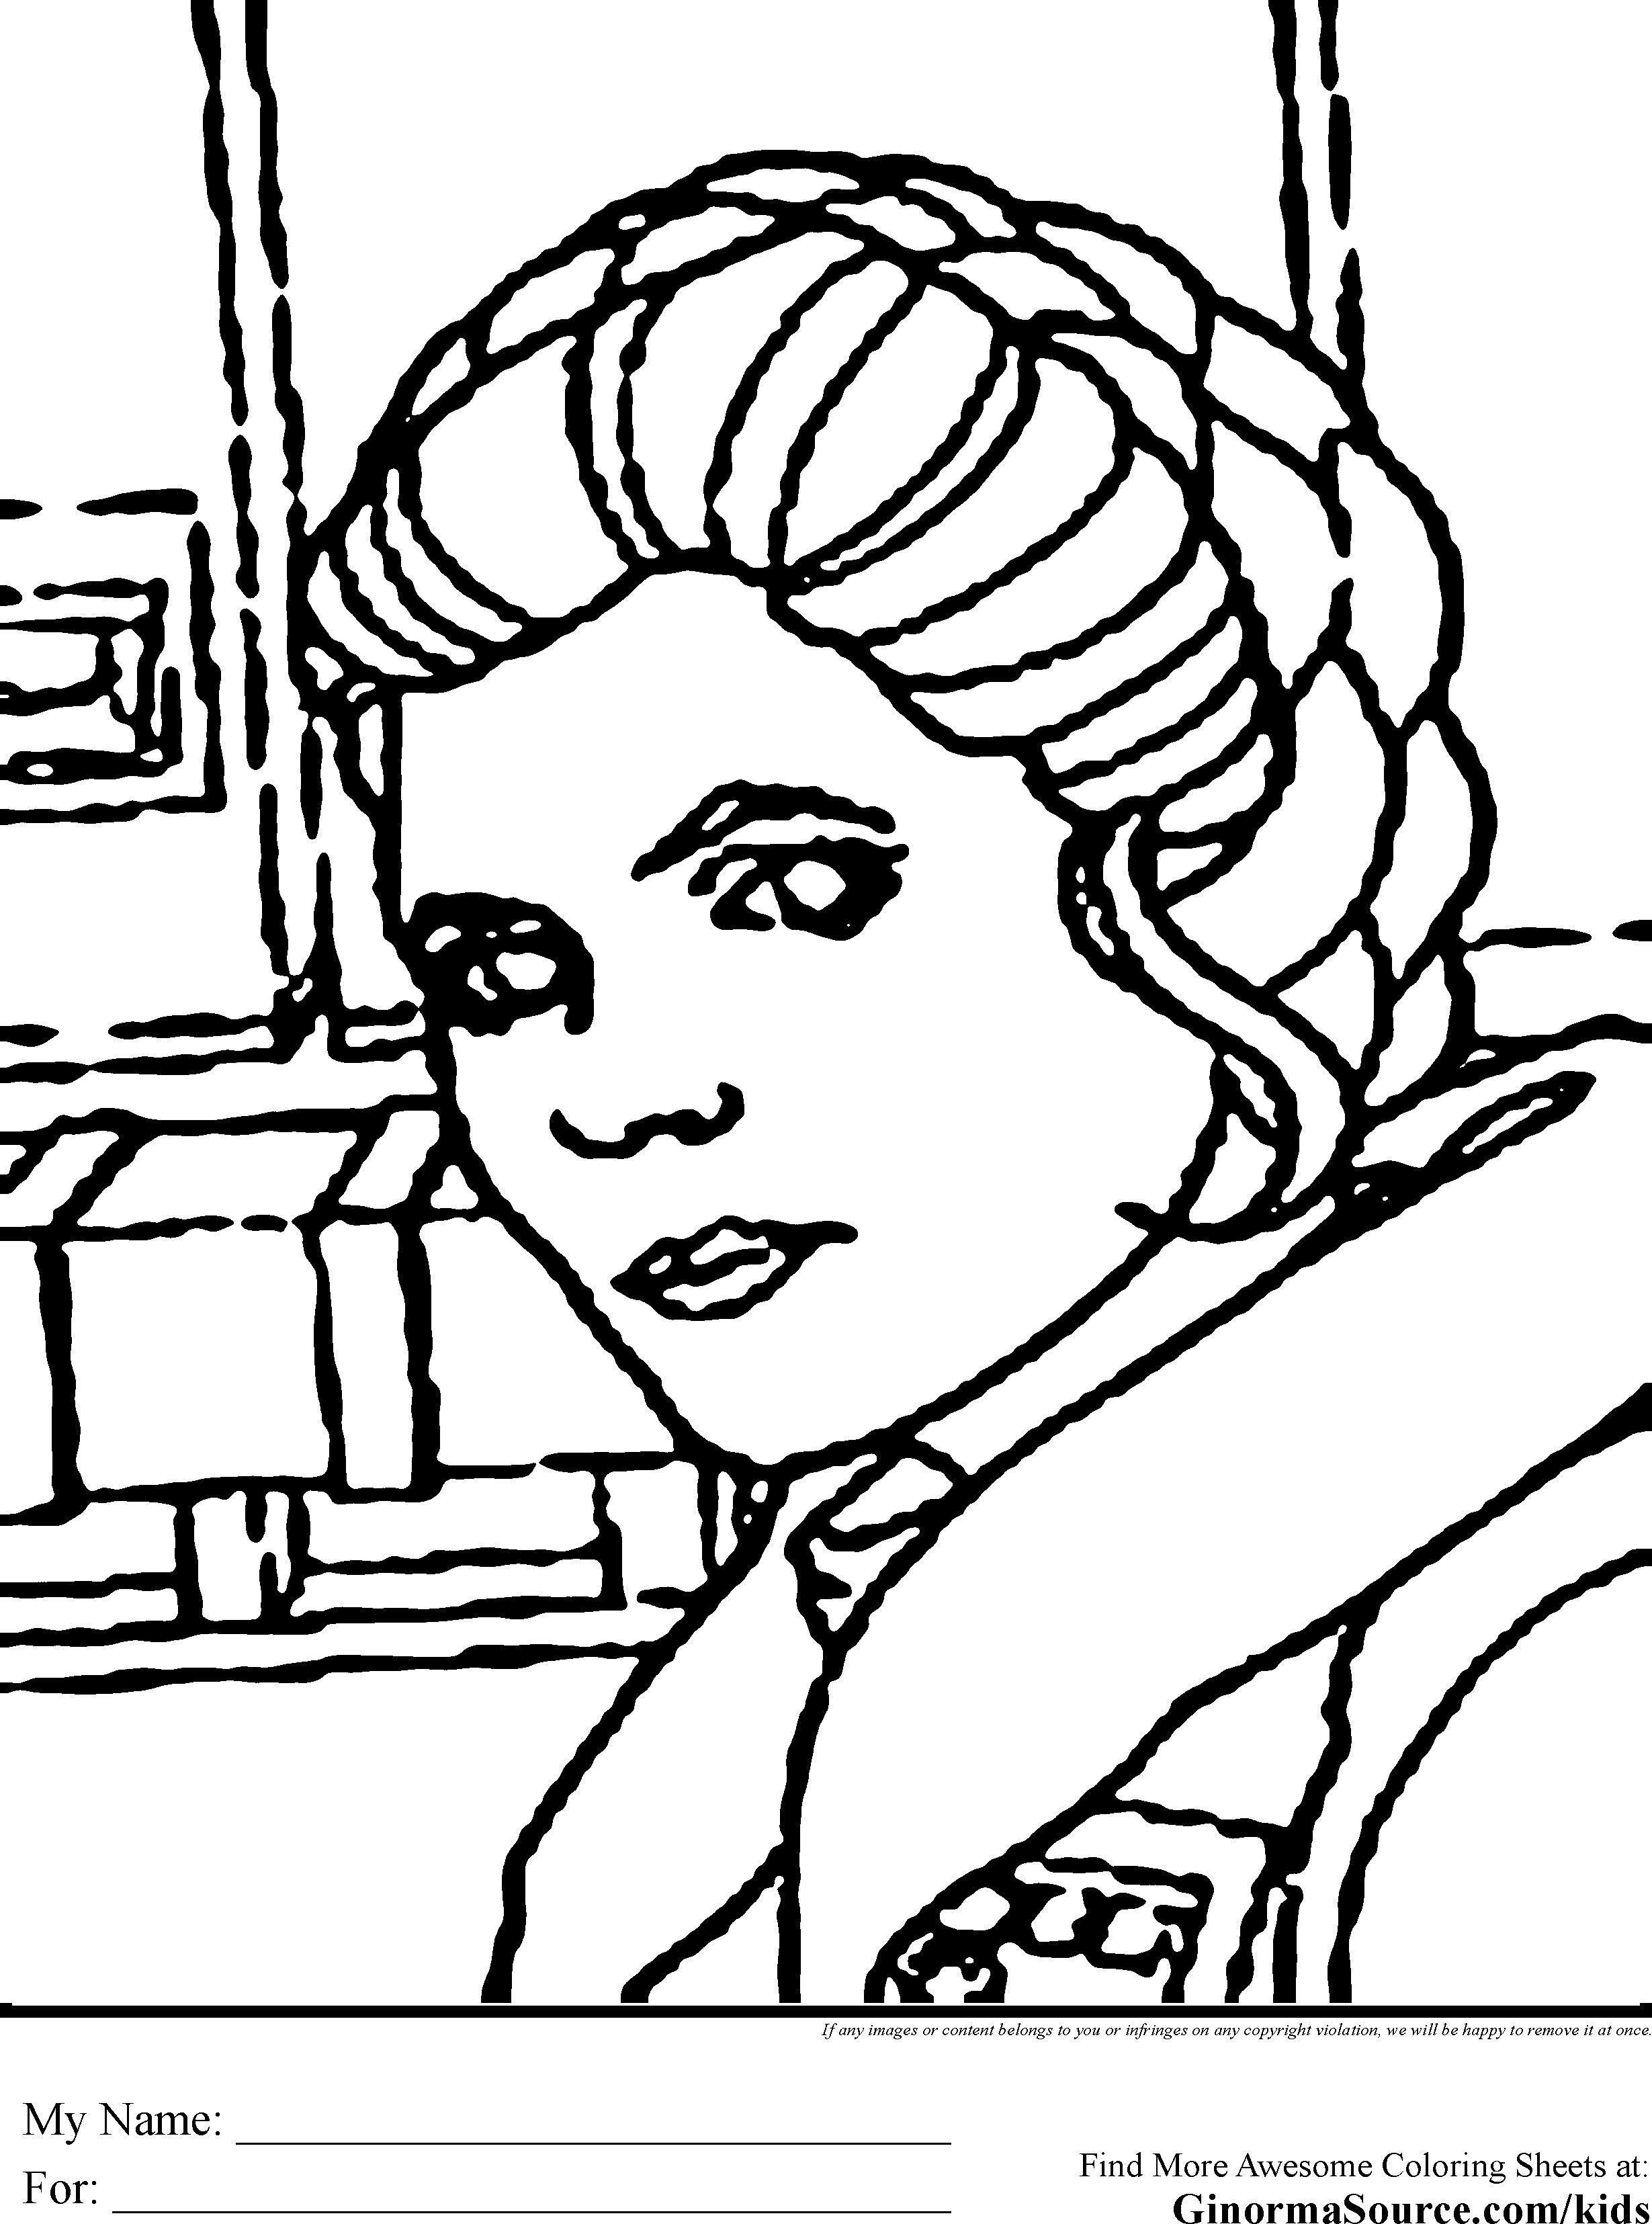 Princess Leia Coloring Pages To Print Through The Thousands Of Photographs On The Net Regardin Coloring Pages Star Wars Princess Leia Coloring Pages To Print